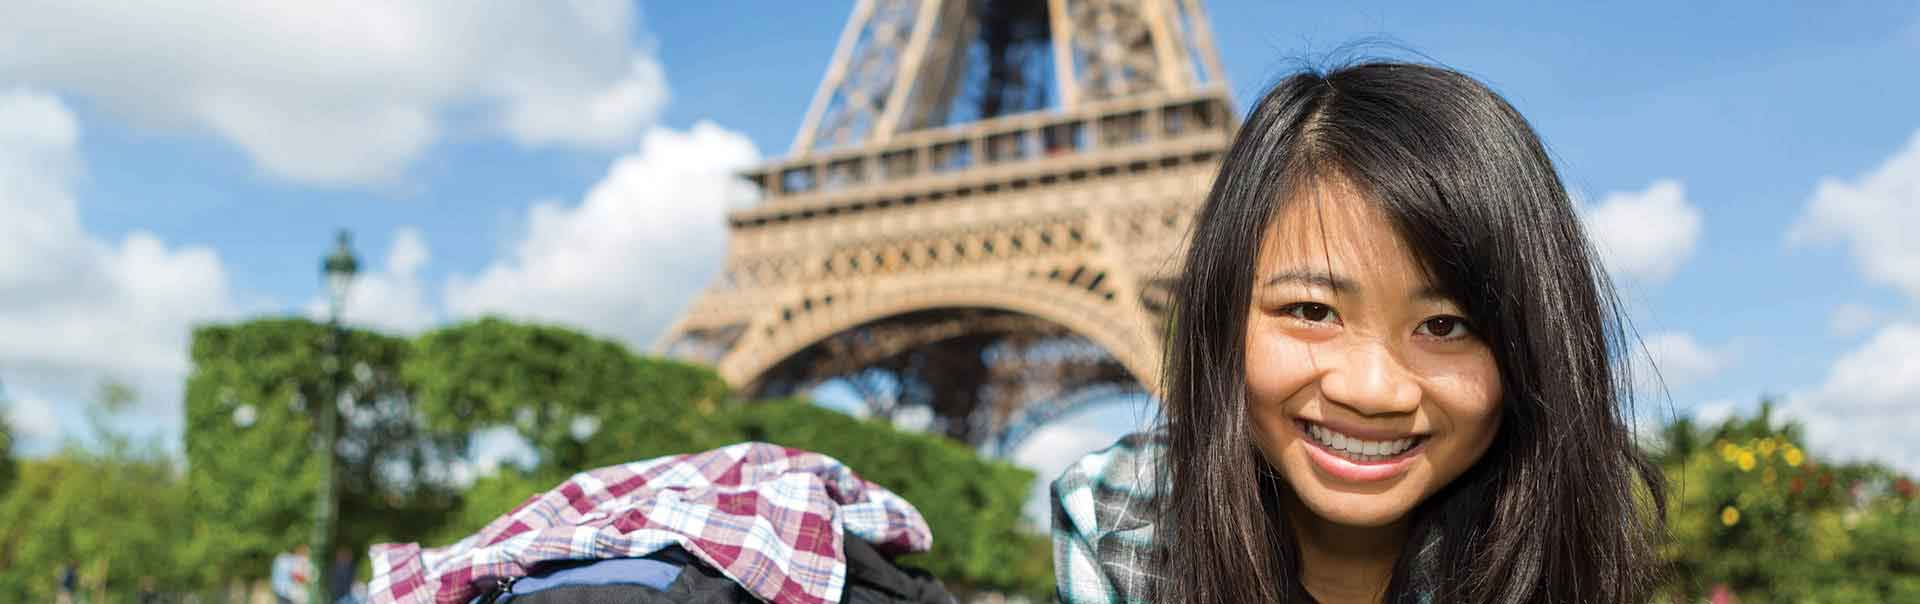 2019 Educatius High School Programs in France for International Students